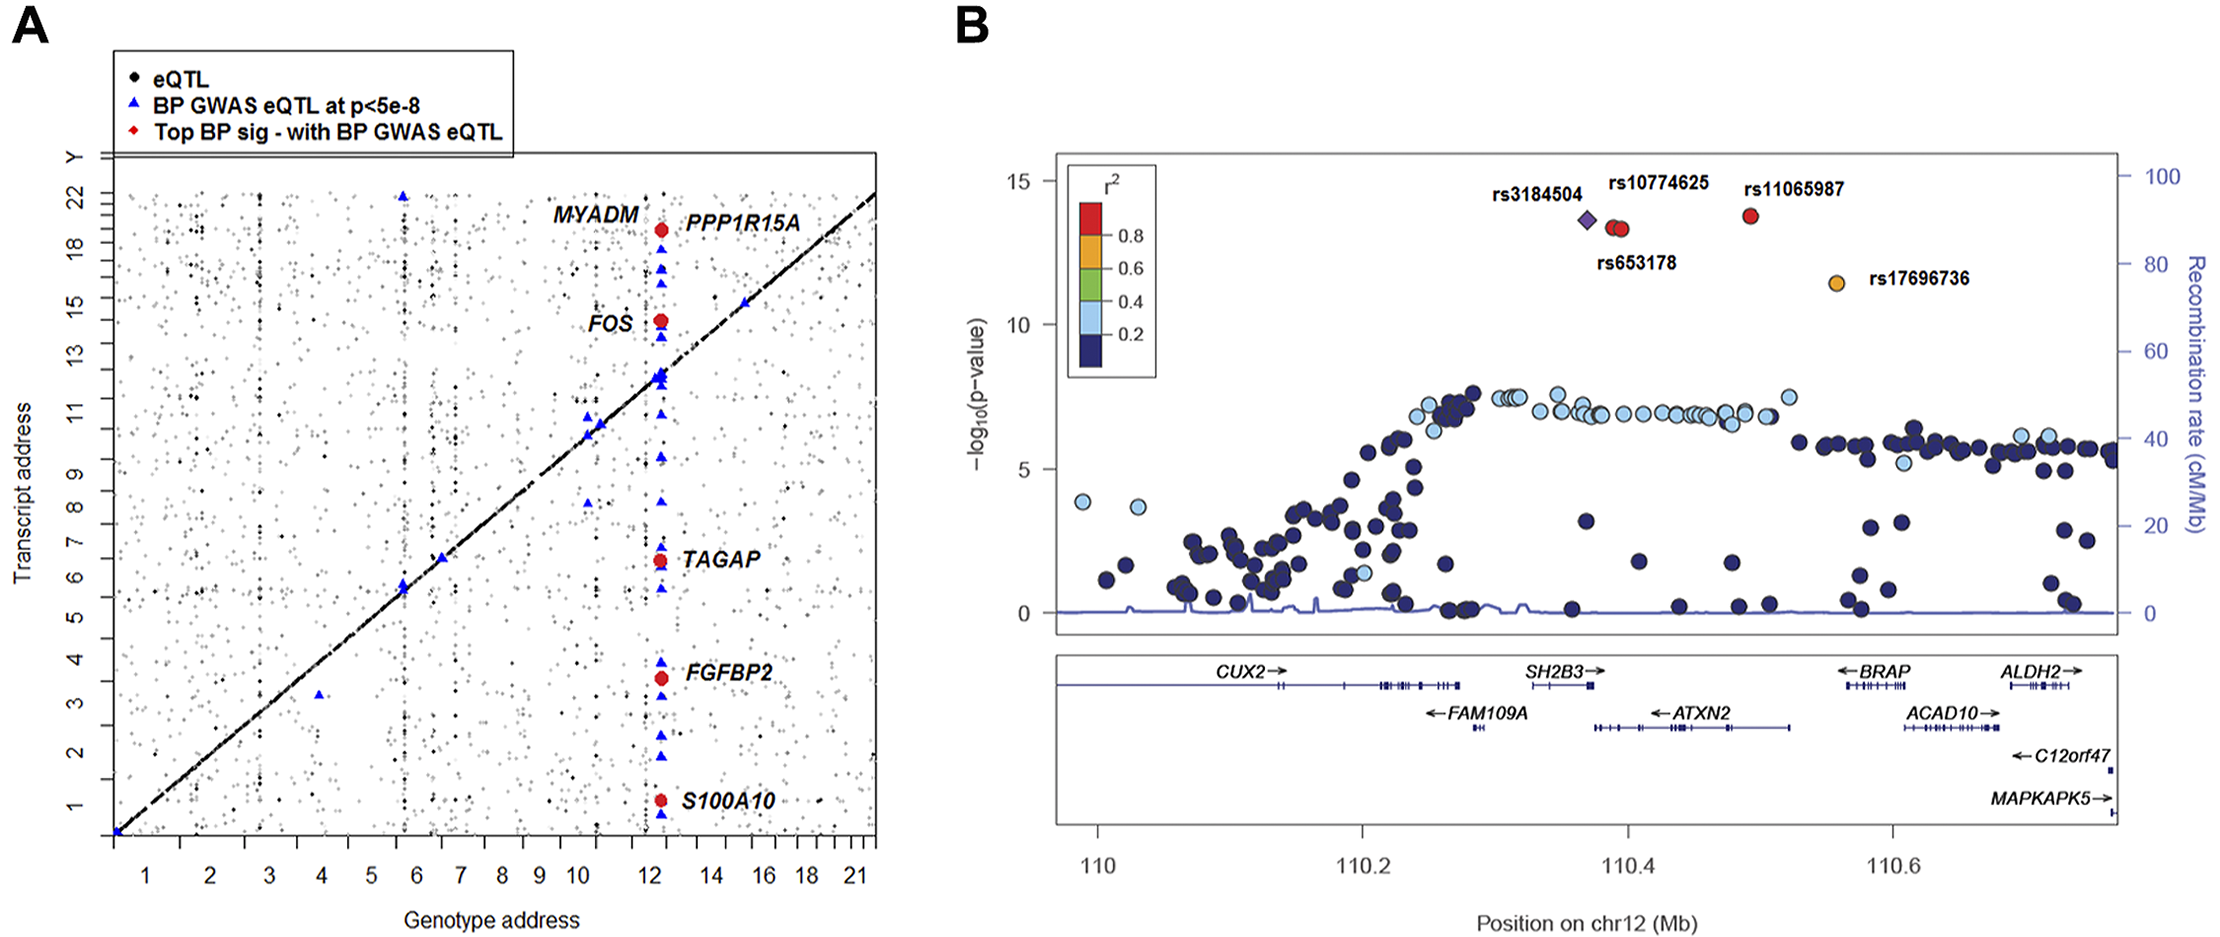 Global view of BP eQTLs effects on differentially expressed BP signature genes.